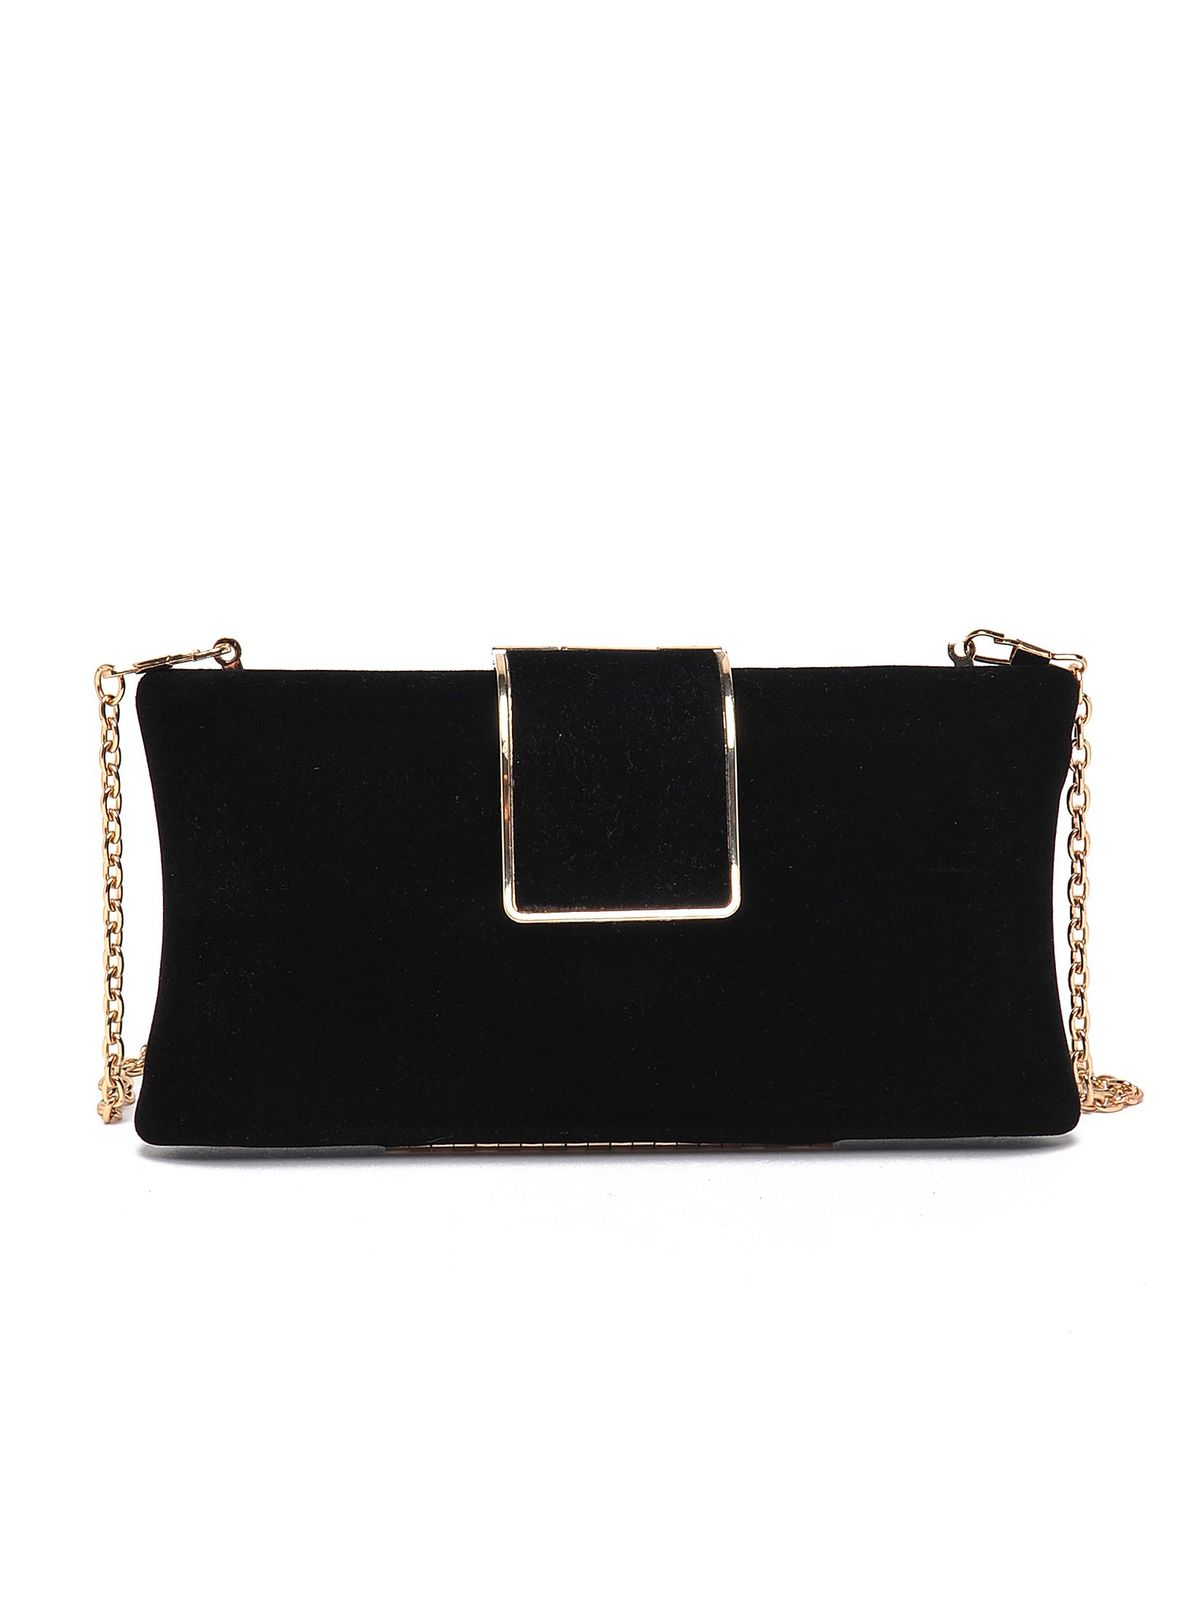 TOP SECRET clutch bag